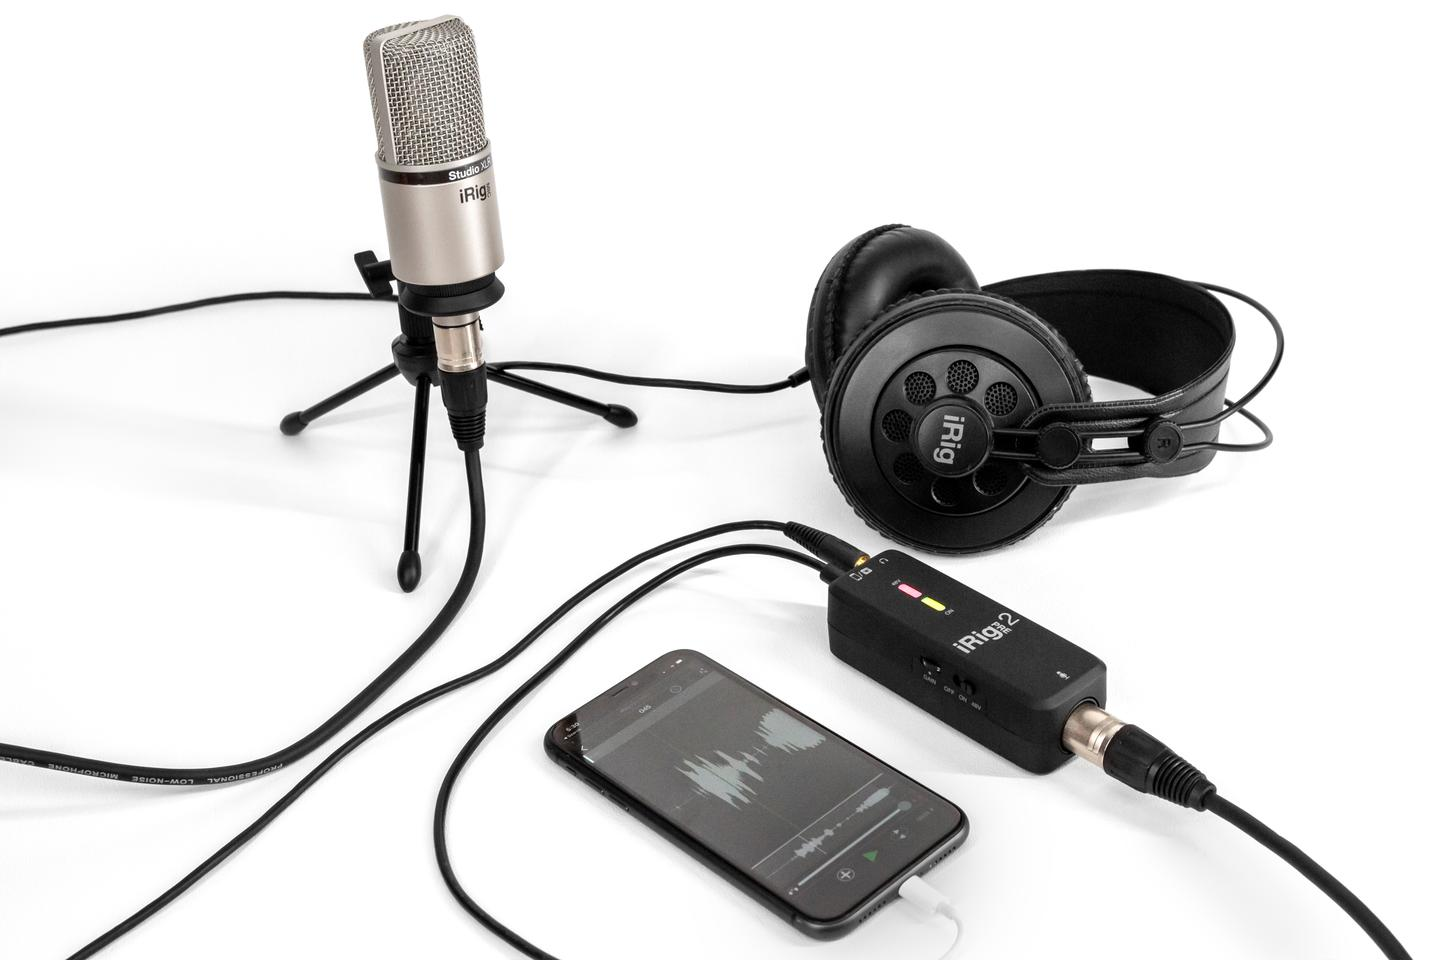 The iRig Pre 2 allows podcasters, vloggers and other content creators to use a XLR mic with mobile devices and digital cameras